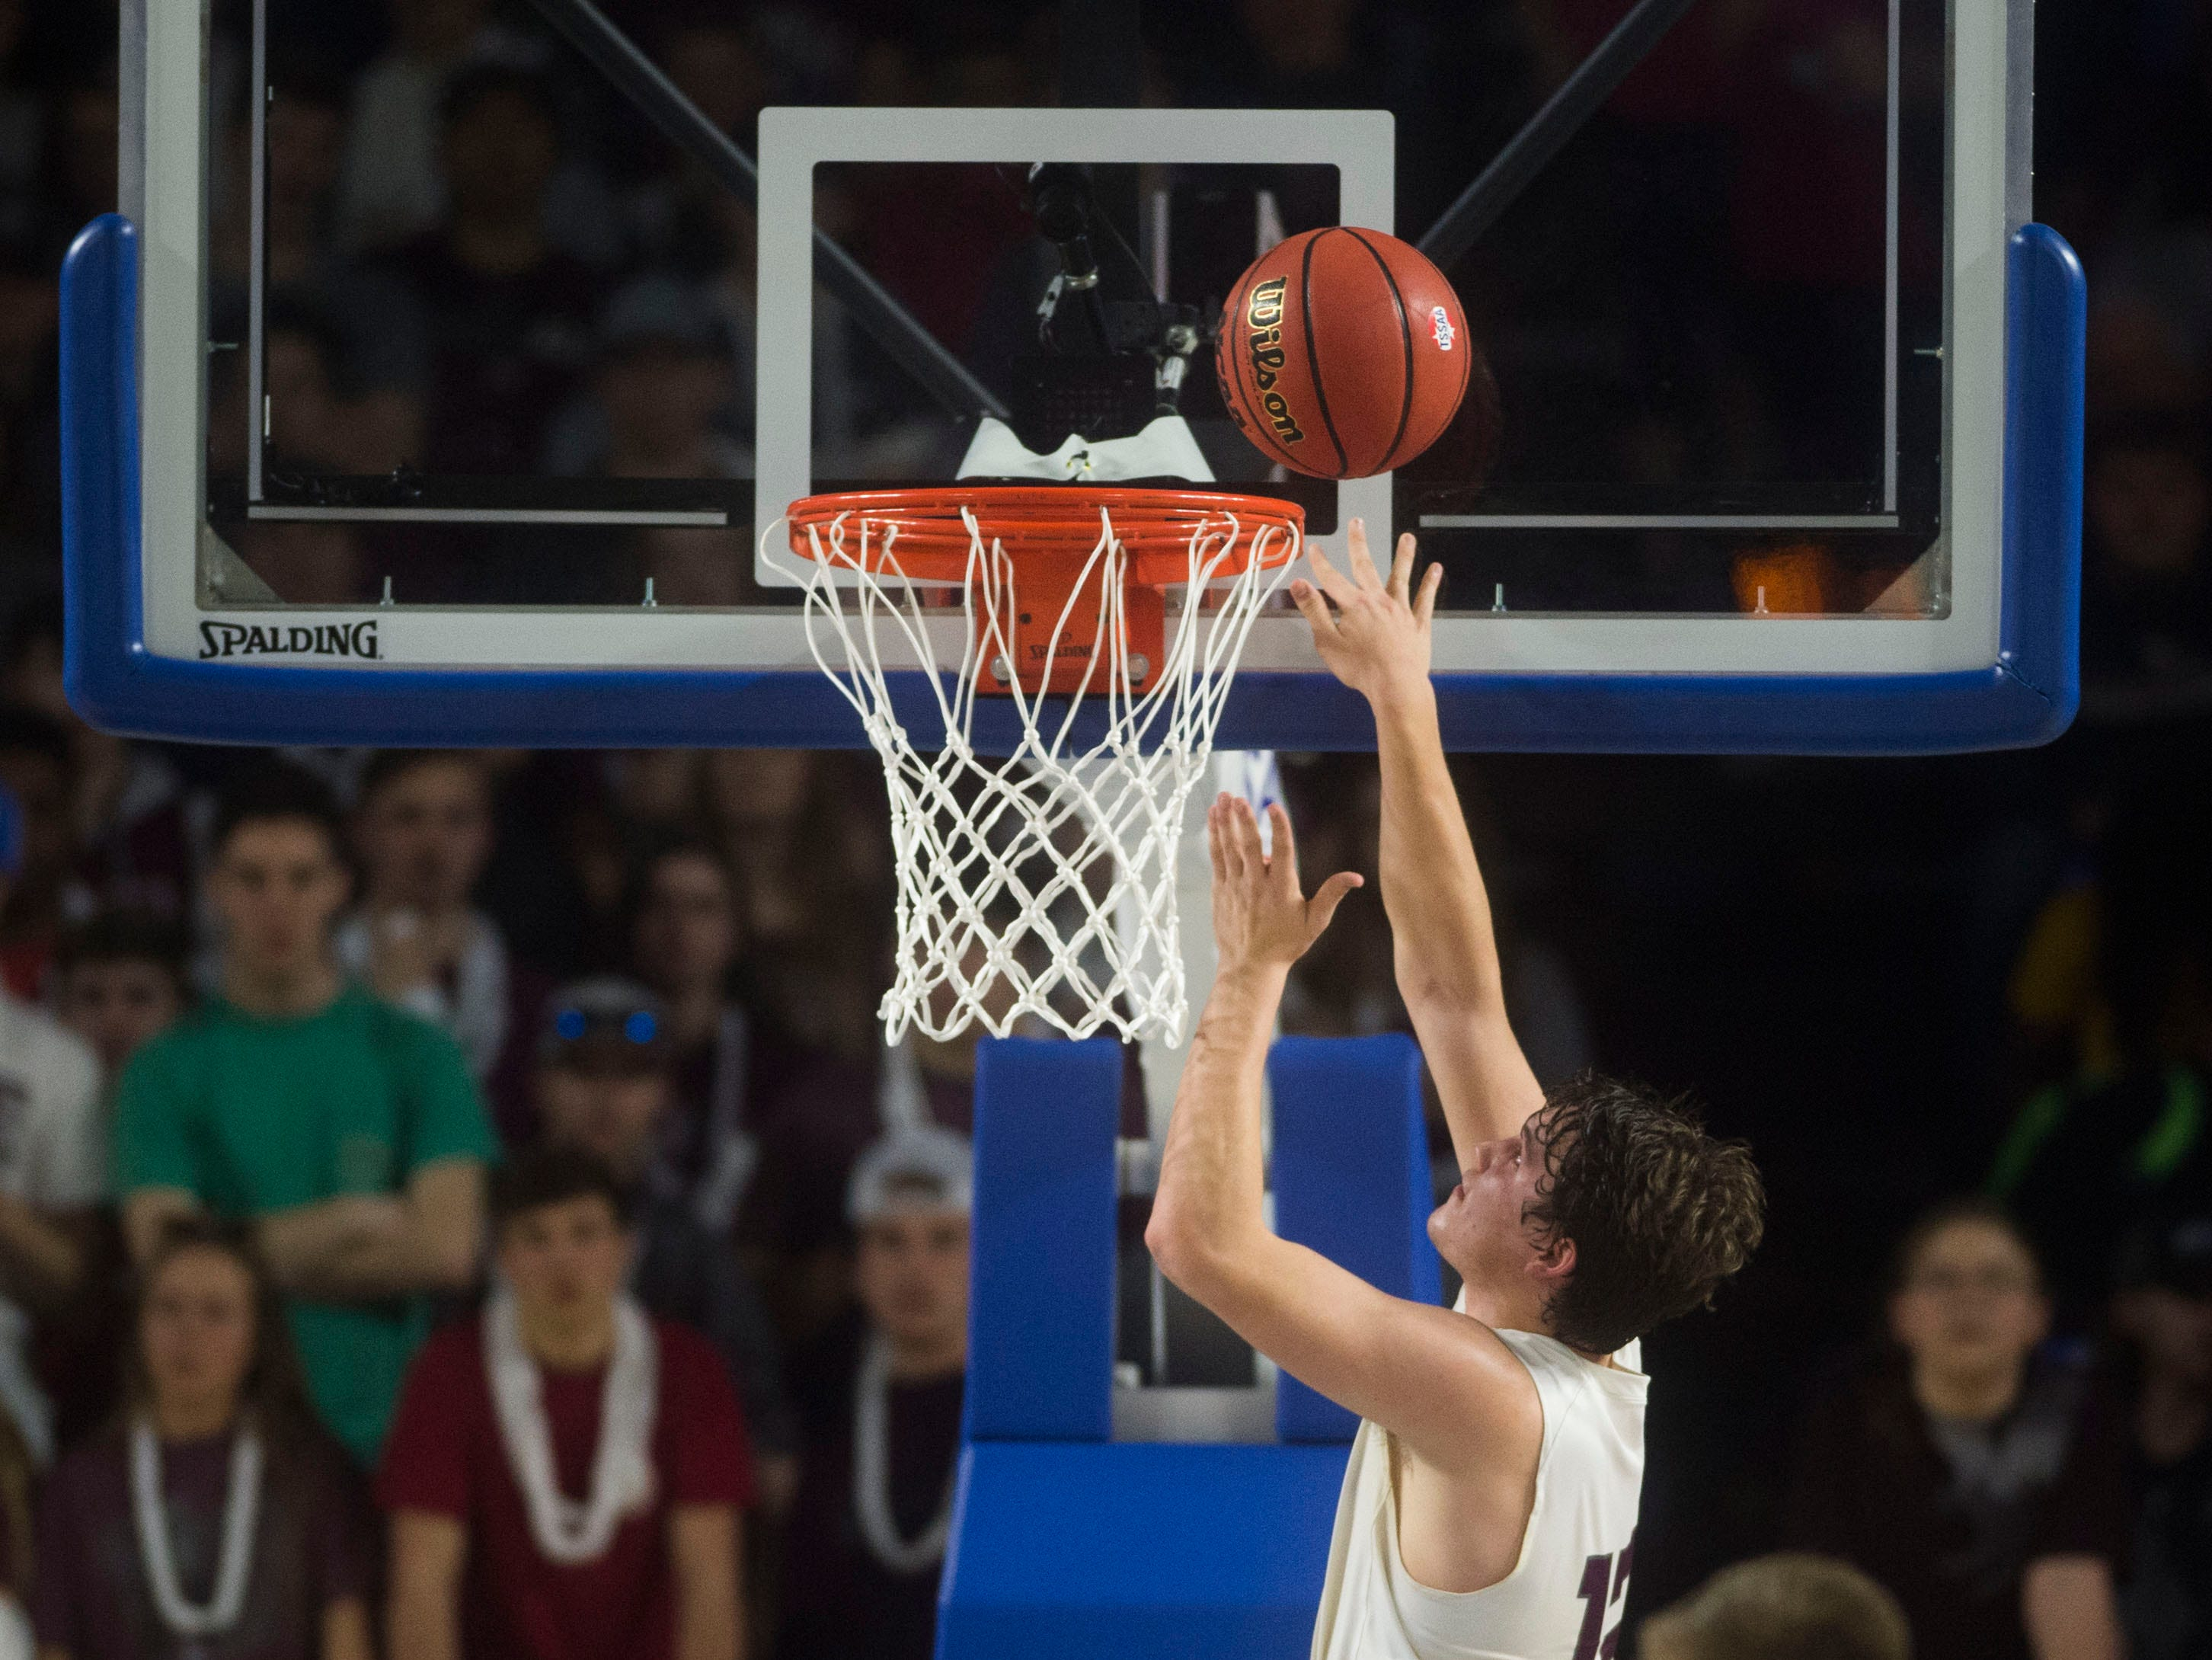 Eagleville's Luke Parish (13) attempts a rebound unsuccessfully during a TSSAA A state quarterfinal game between Eagleville and Cosby at the Murphy Center in Murfreesboro, Thursday, March 14, 2019. Eagleville defeated Cosby 66-55.